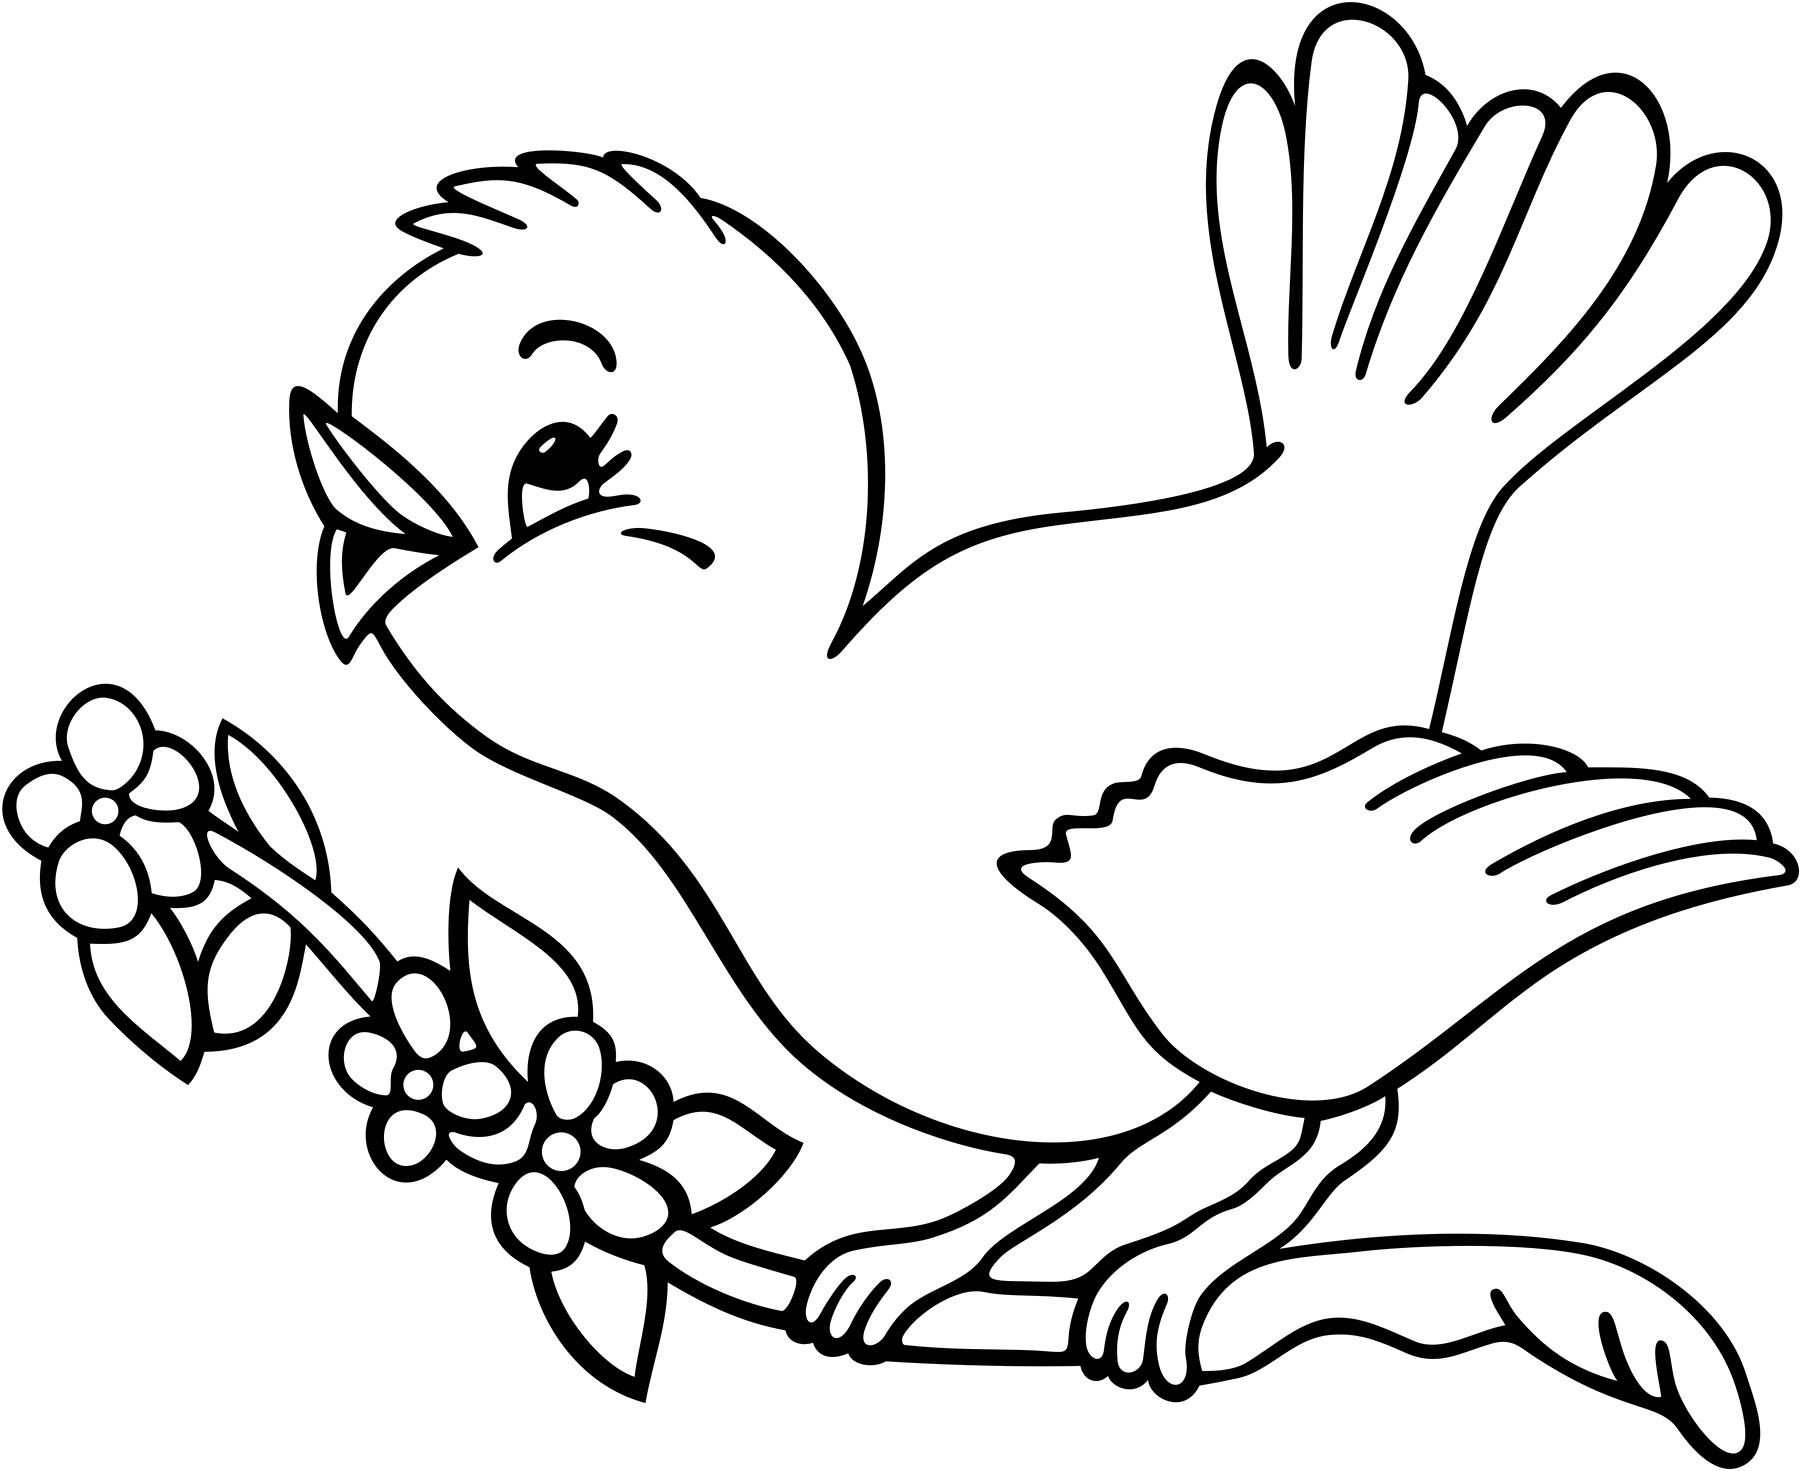 Pin by Birgit Keys on Clip Art Birds | Bird coloring pages, Coloring ...